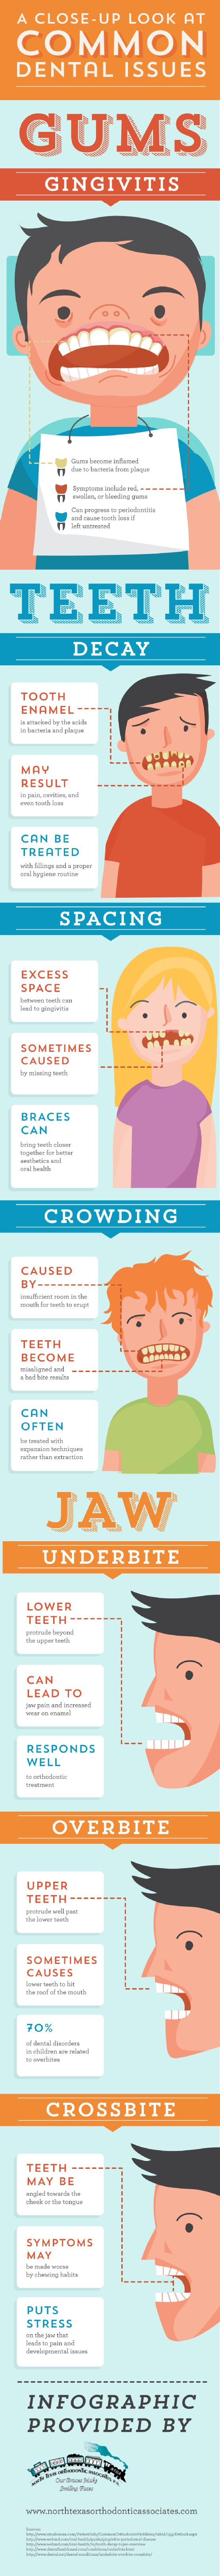 a-close-up-look-at-common-dental-issues-infographic